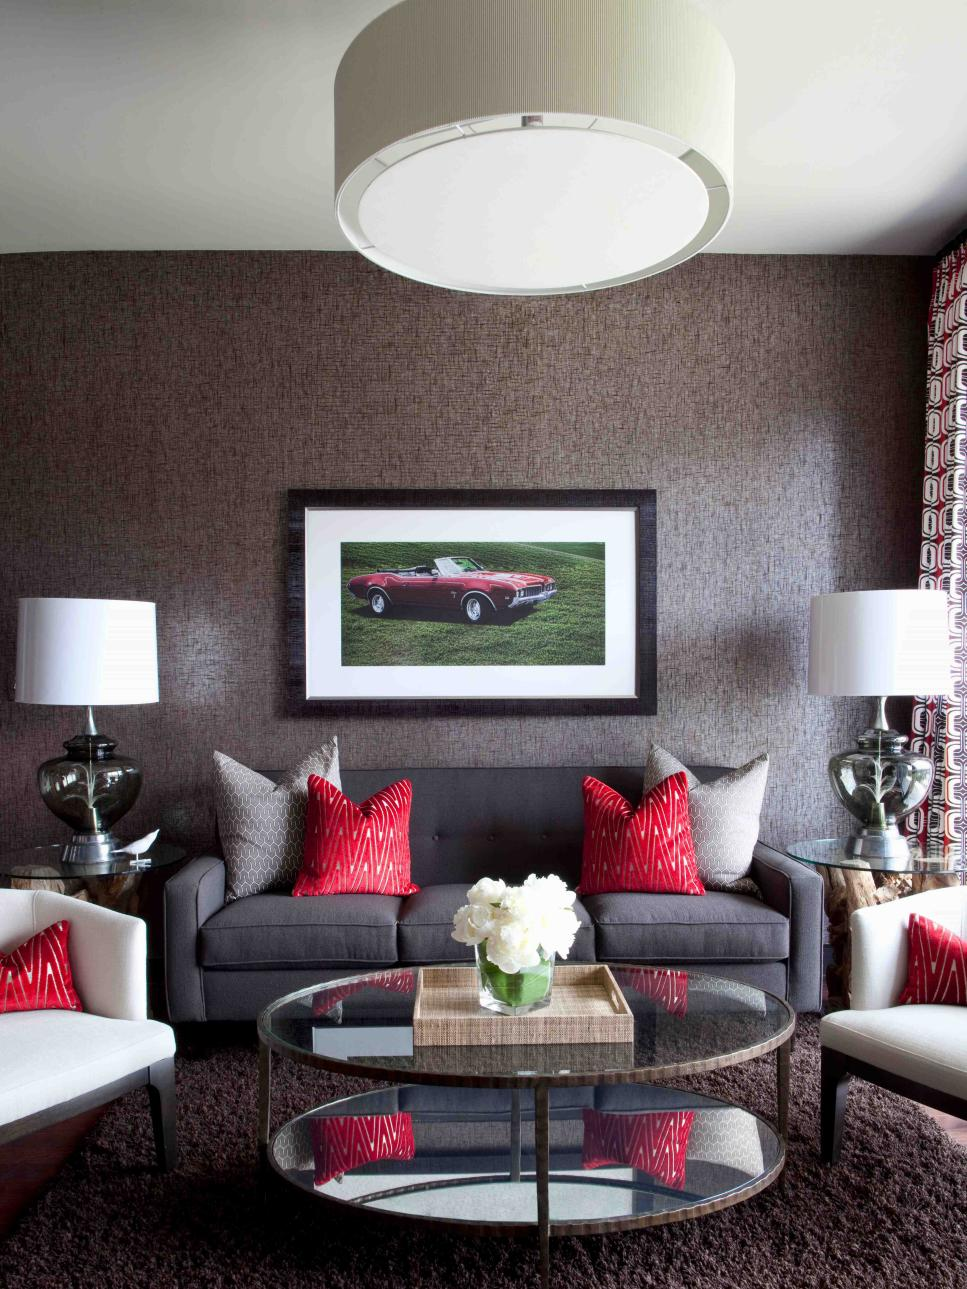 Best High End Bachelor Pad Decorating On A Budget Hgtv This Month